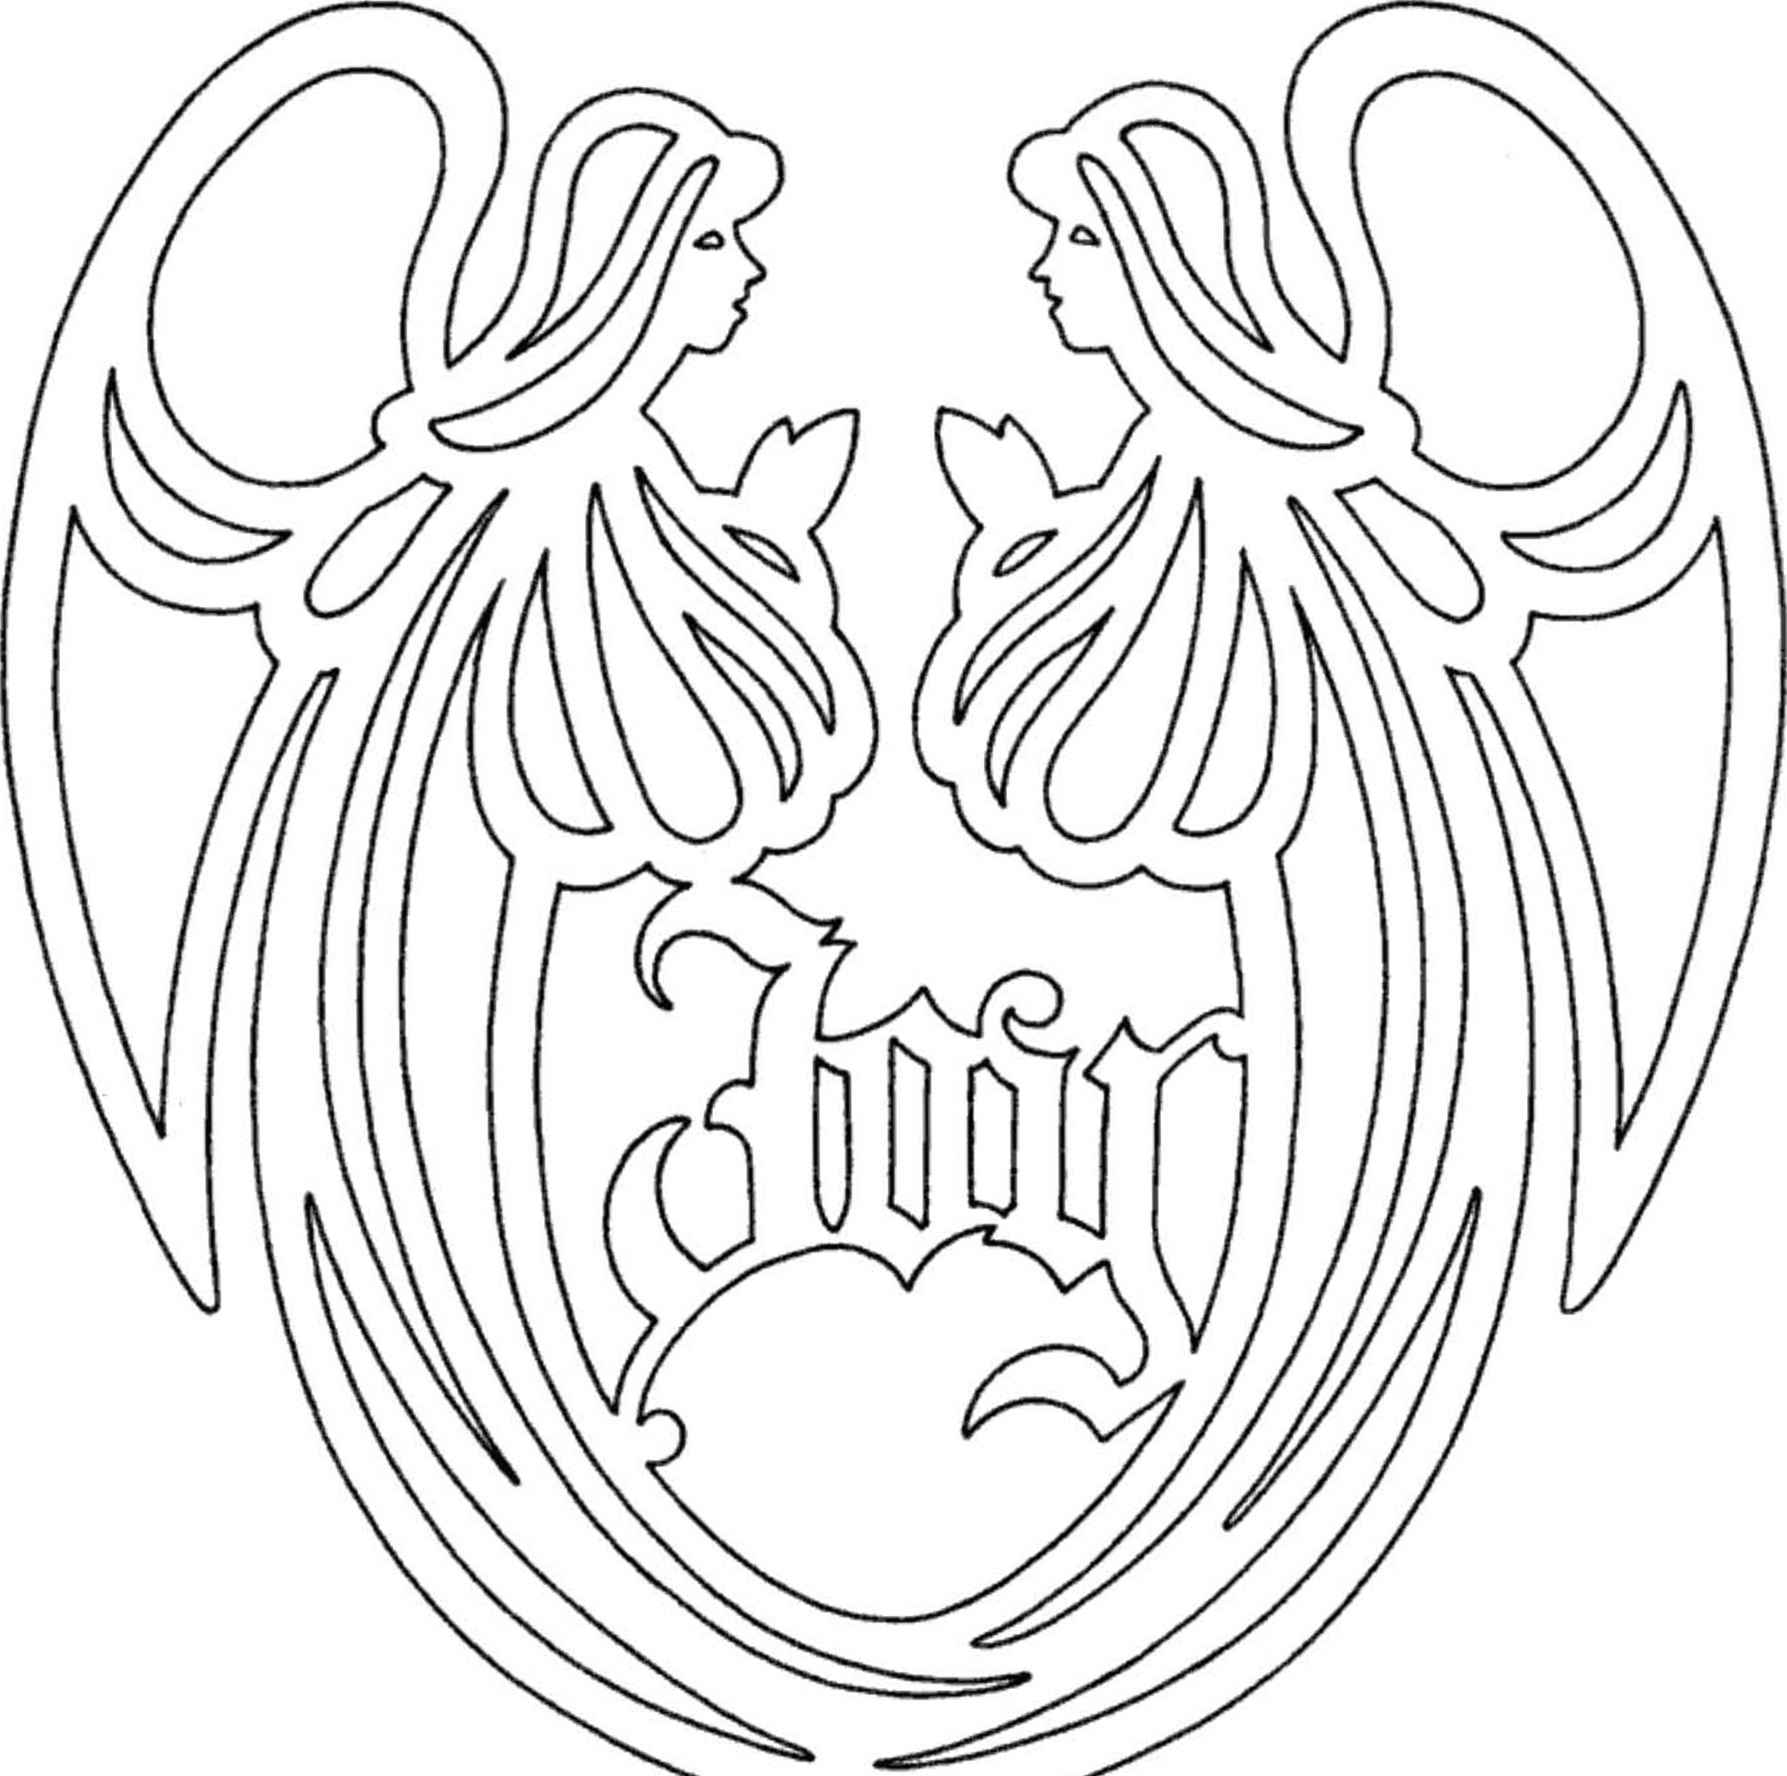 Angels Of Joy furthermore Post c Monogram Stencils Printable 221649 besides Saw Handle Templates also Catalog additionally Knife Templates. on wood carving patterns for free